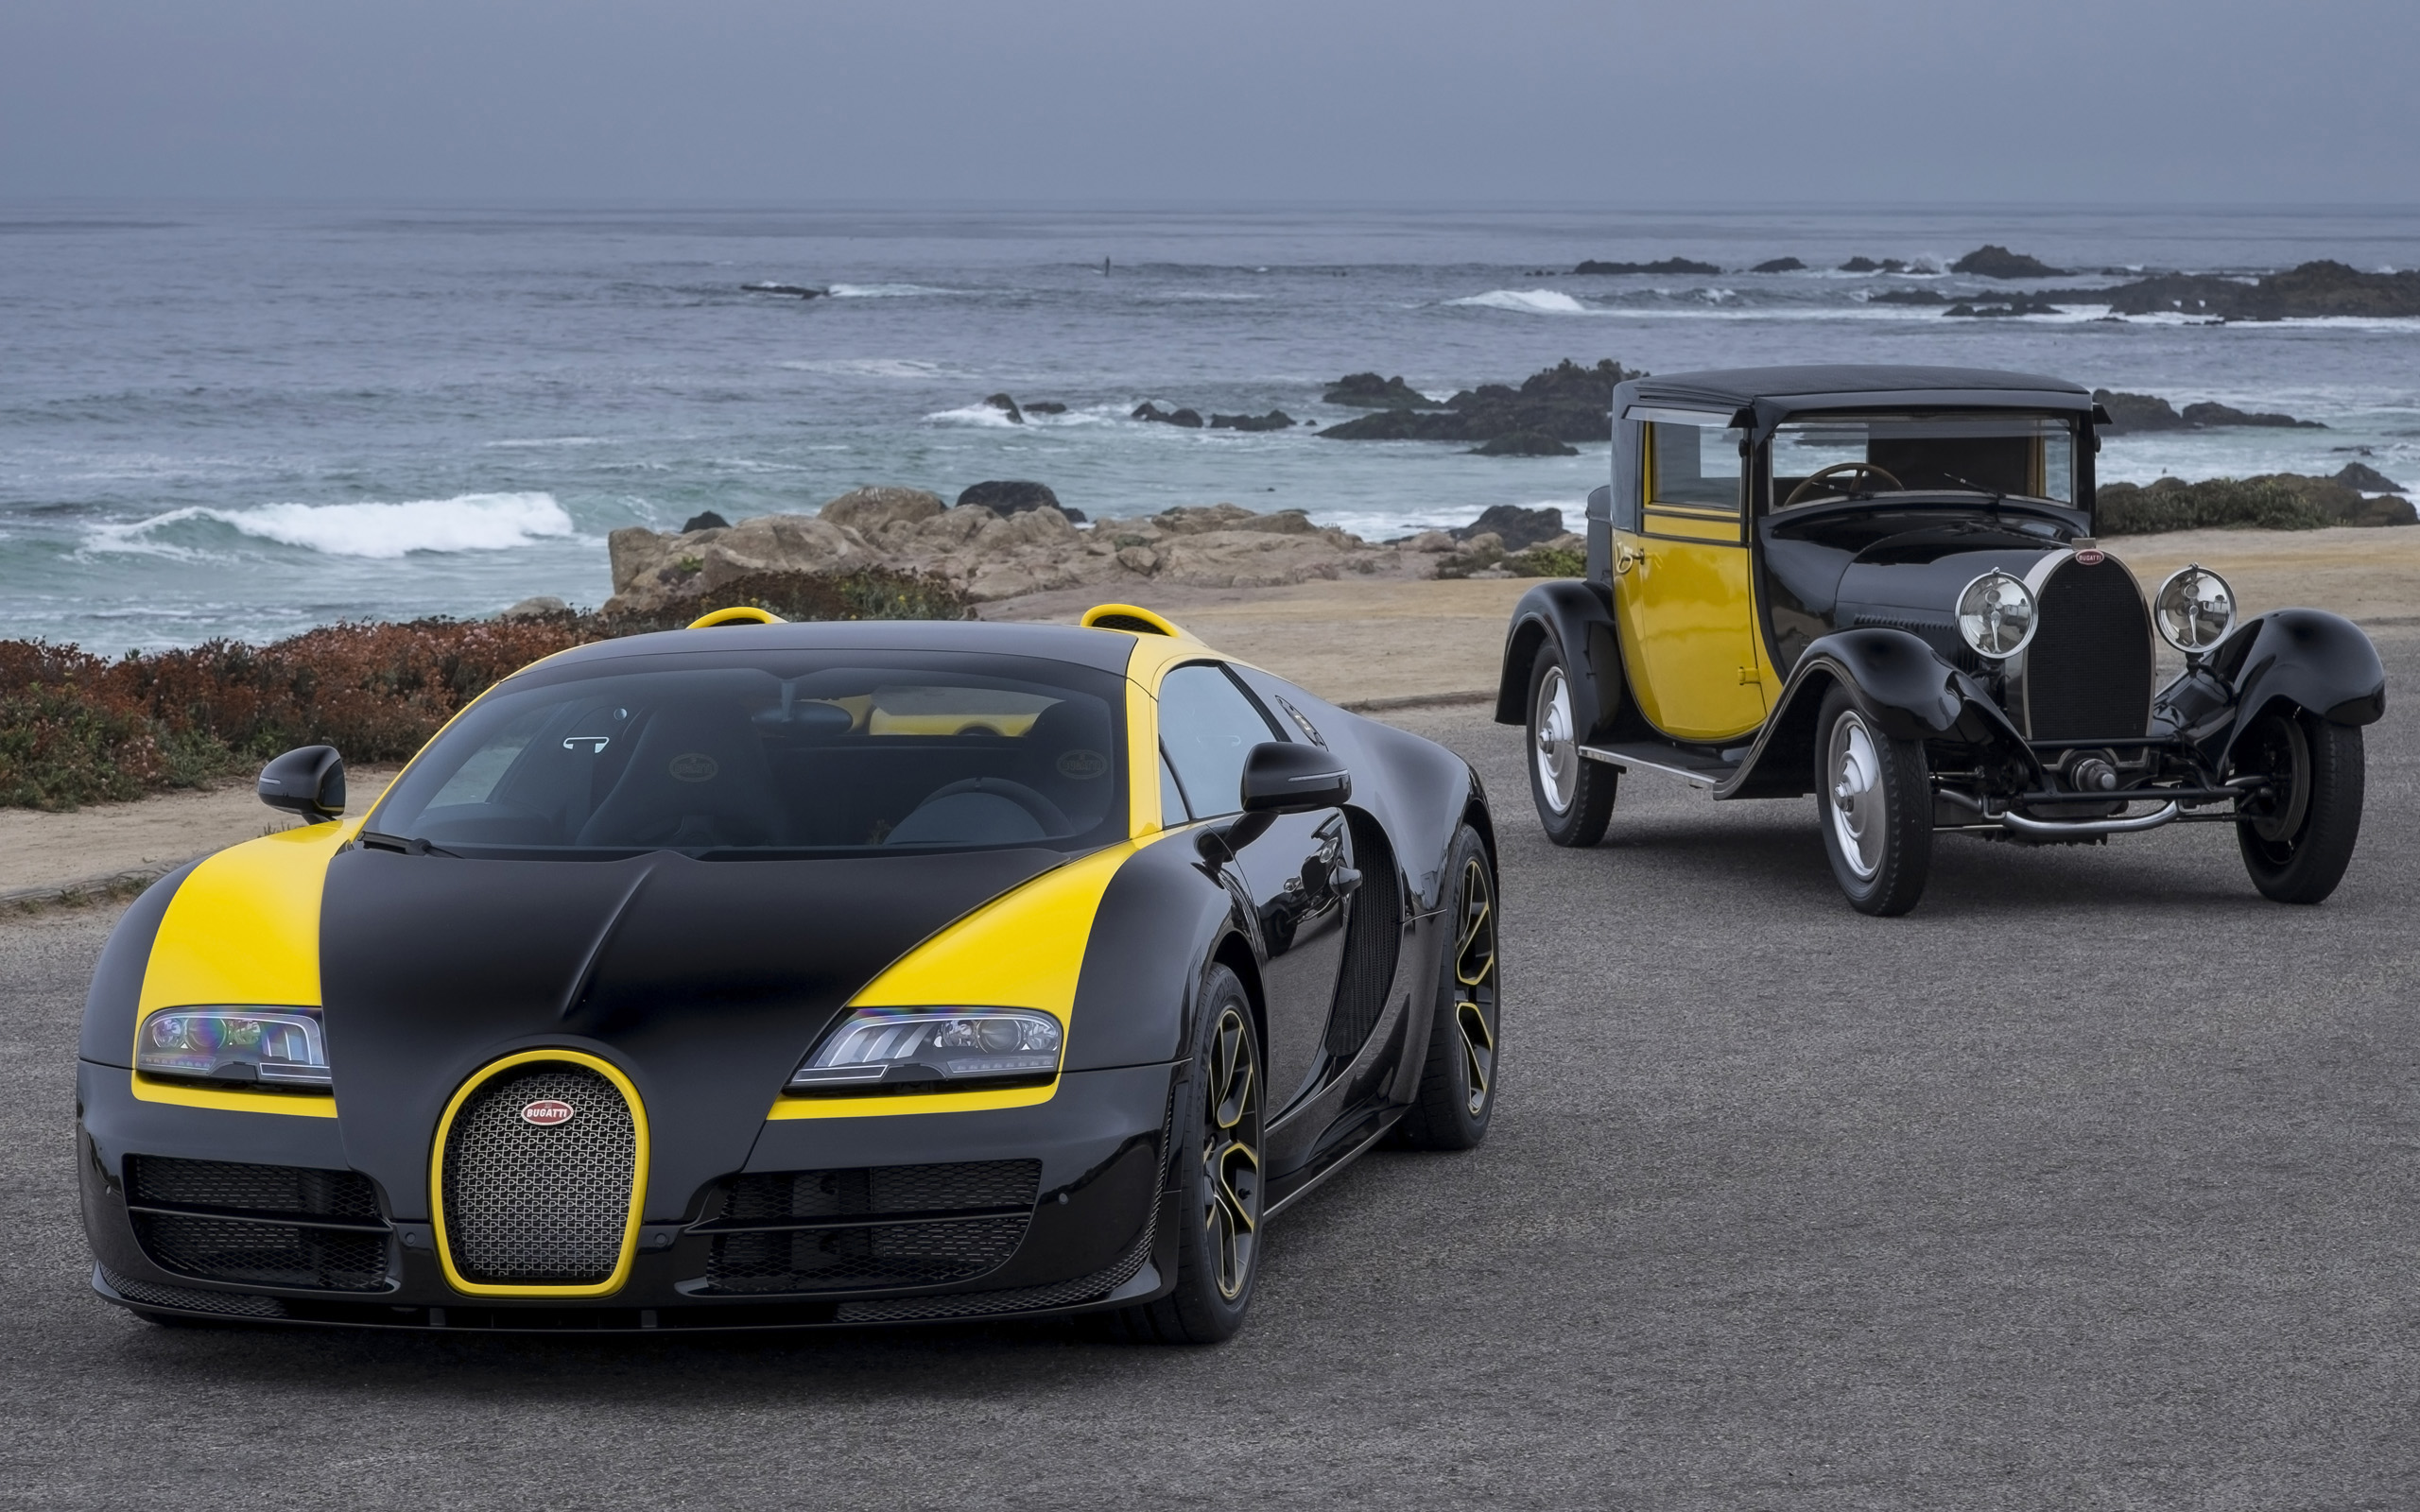 2014 Bugatti Veyron Grand Sport Vitesse 1 of 1 by ThexRealxBanks